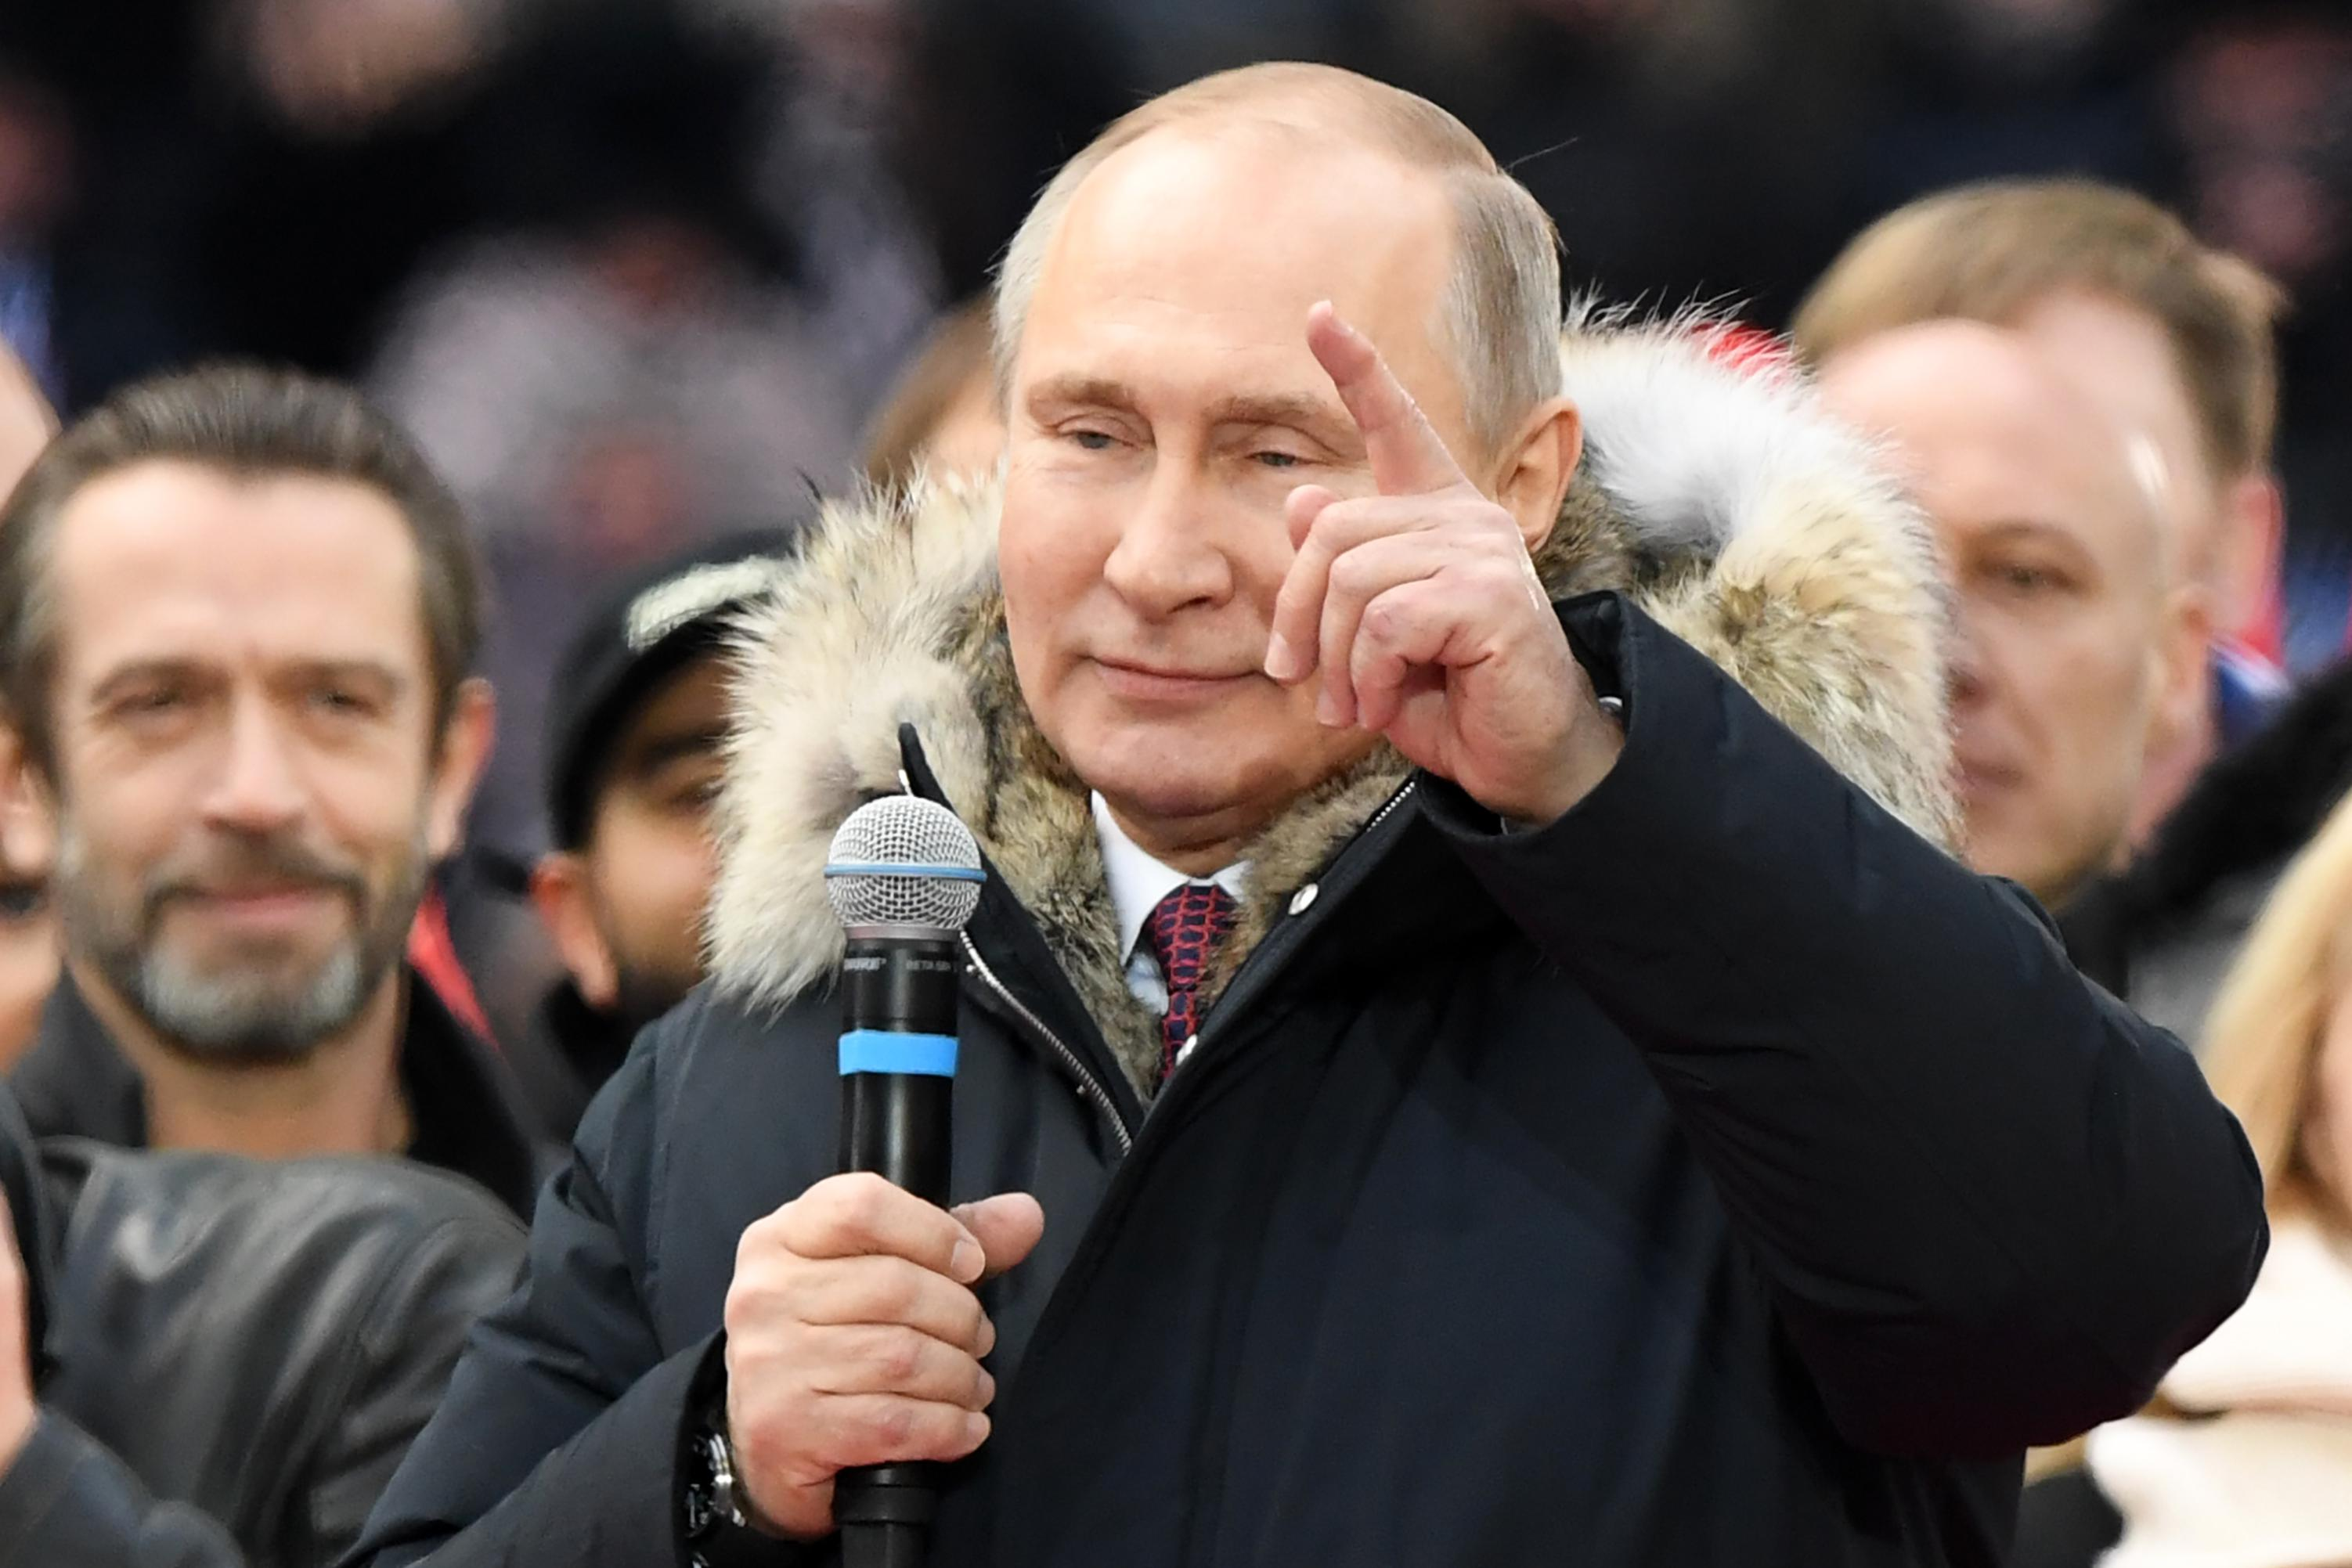 Presidential candidate, President Vladimir Putin attends a rally to support his candidature in the upcoming presidential election at the Luzhniki stadium in Moscow on March 3, 2018.         Russians will go to the polls on March 18, 2018. / AFP PHOTO / Kirill KUDRYAVTSEV        (Photo credit should read KIRILL KUDRYAVTSEV/AFP/Getty Images)